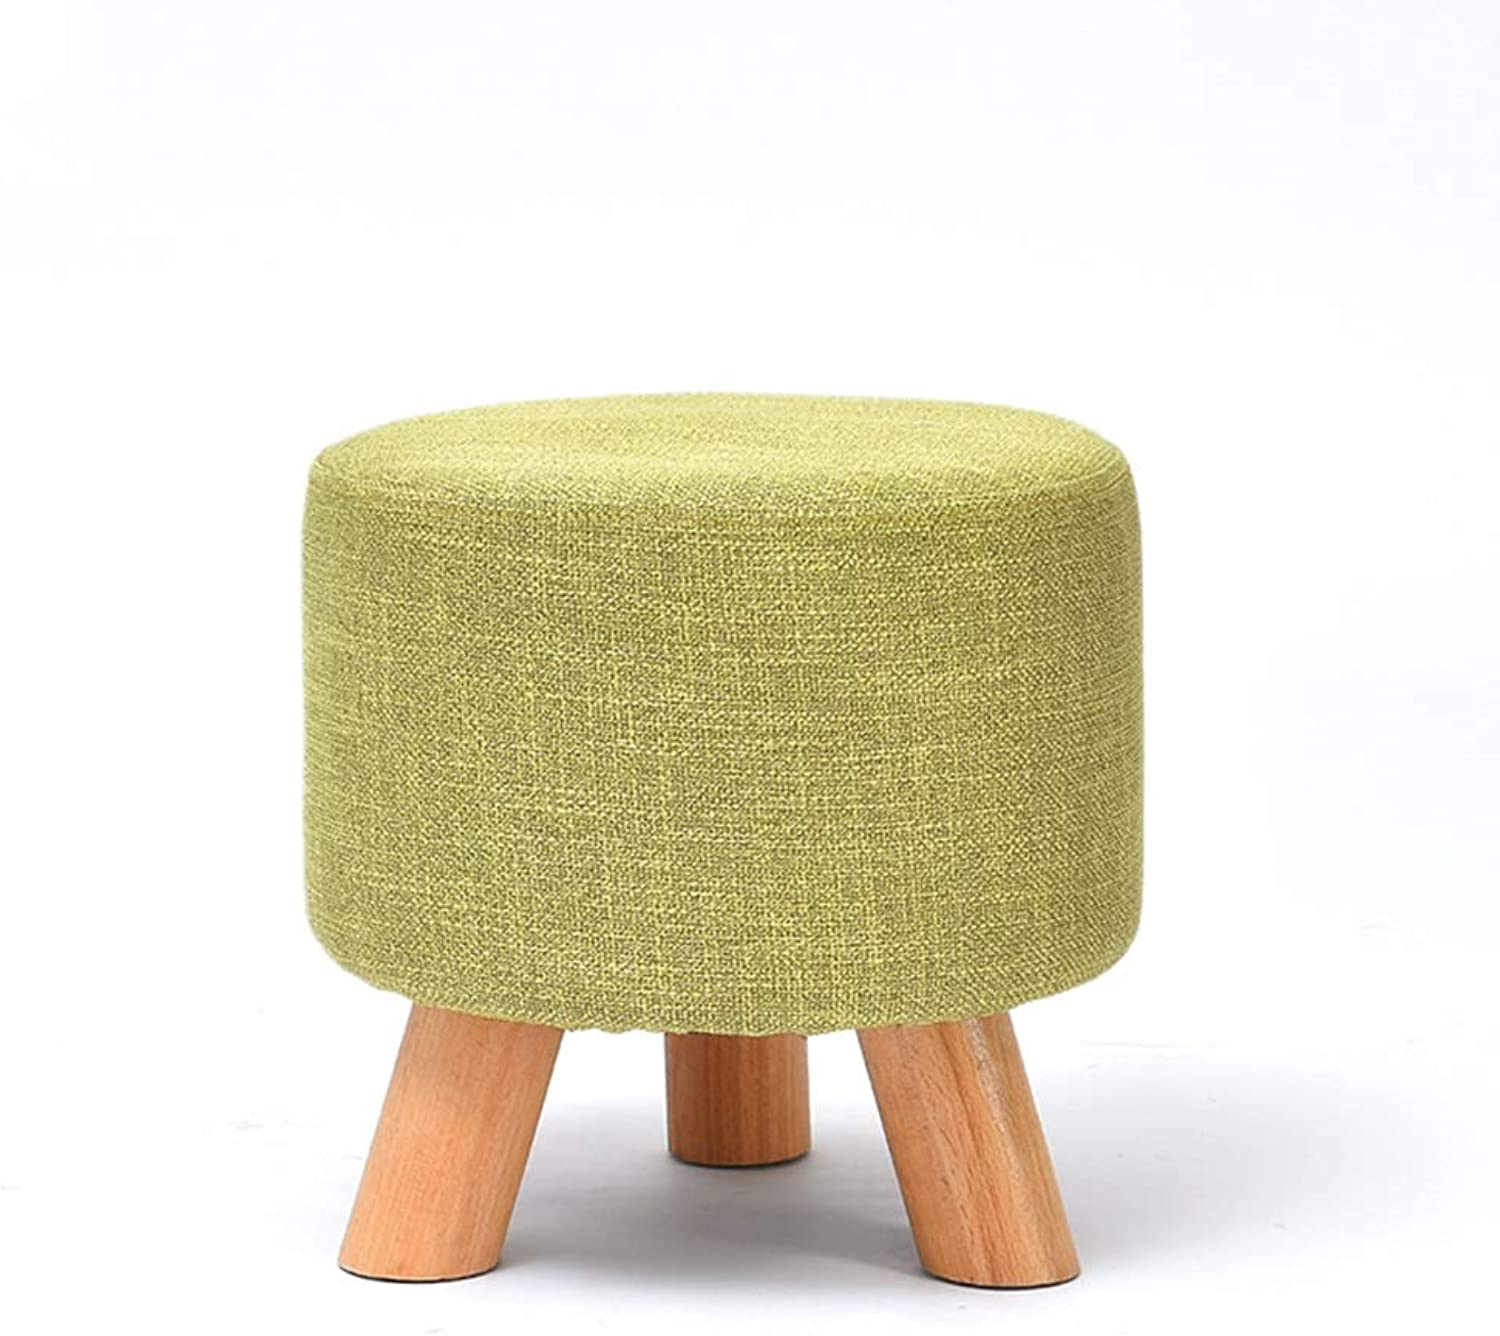 """Solid Wood Lowl Bench,Modern Home Foot Stool, Beech Wood Sofa, Round Seat Stool 11.4""""H"""